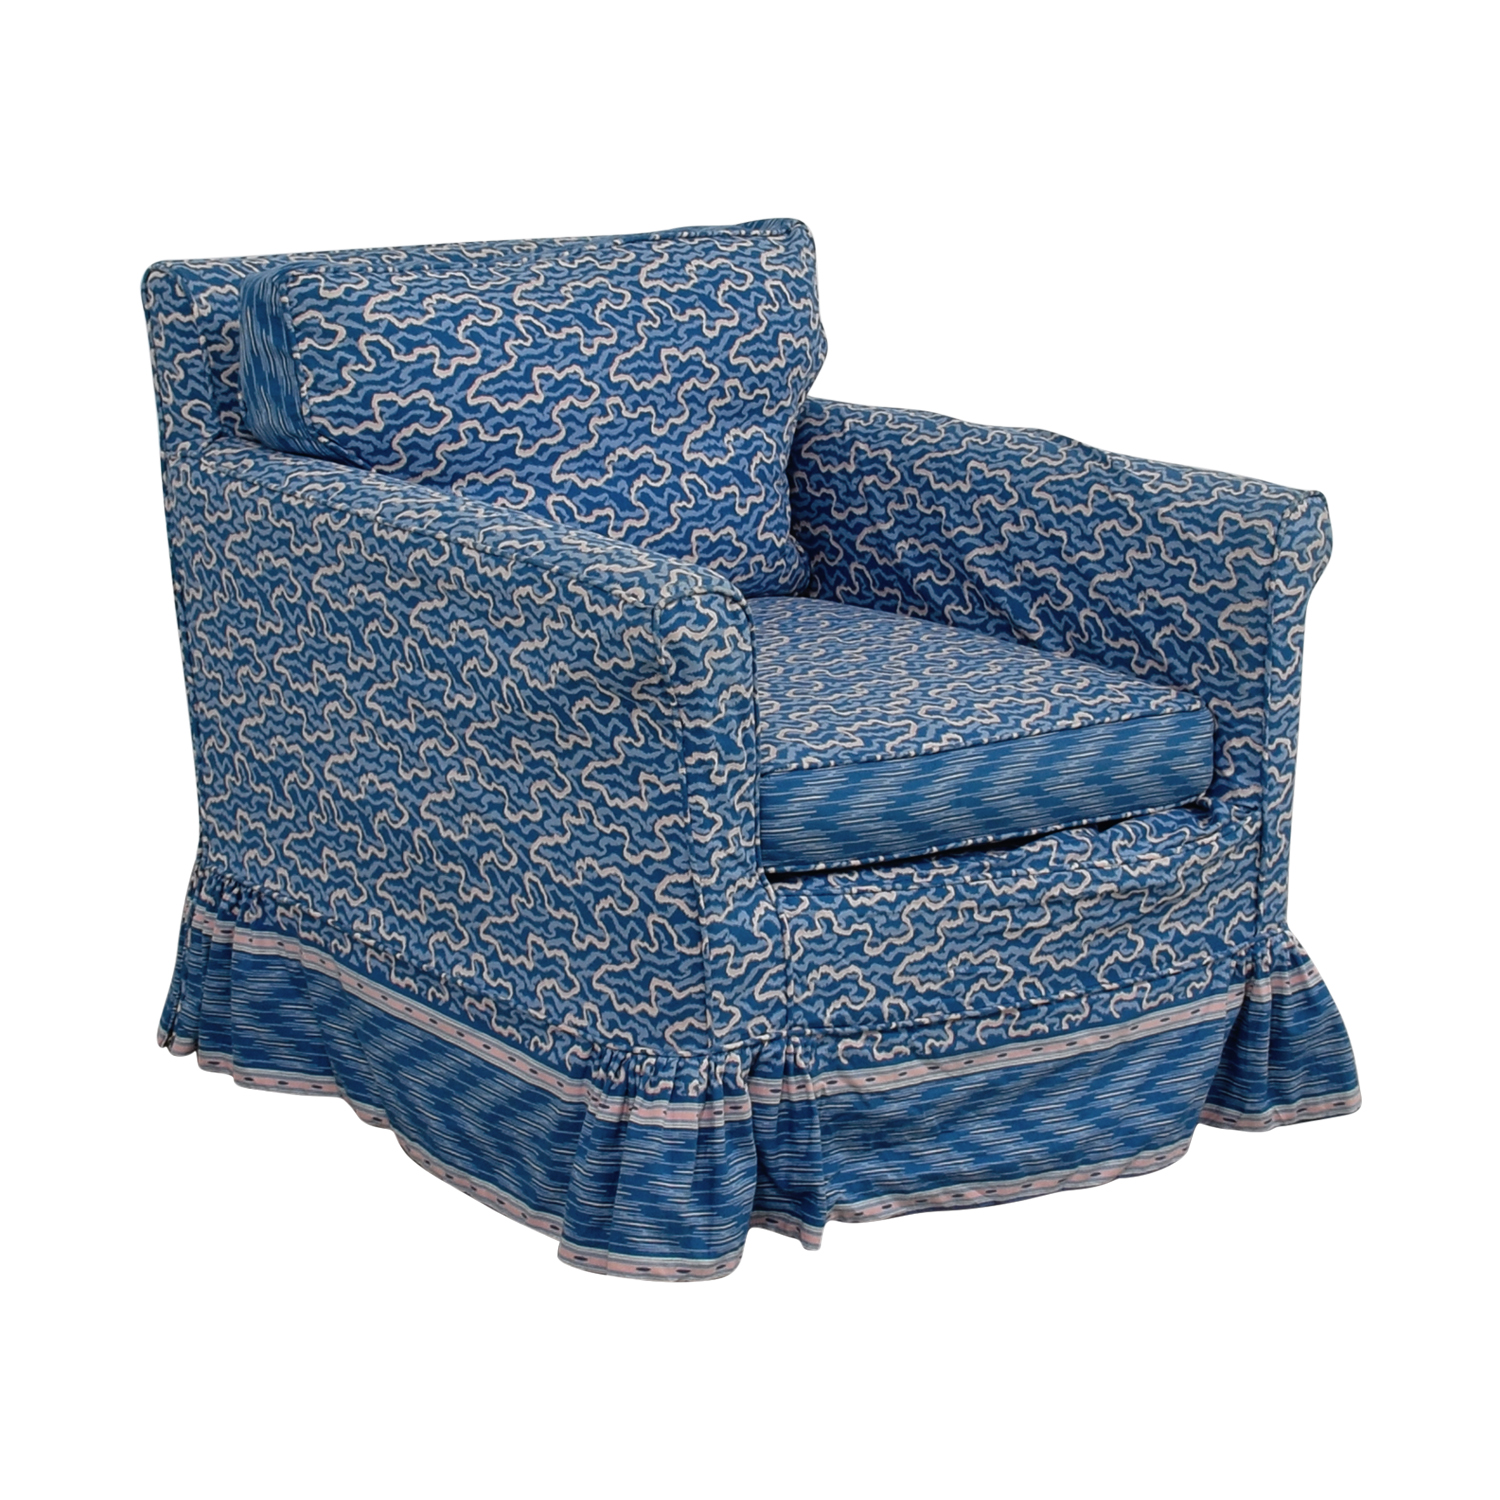 Unique Upholstered Chairs: Custom Blue Upholstered Accent Chair / Chairs